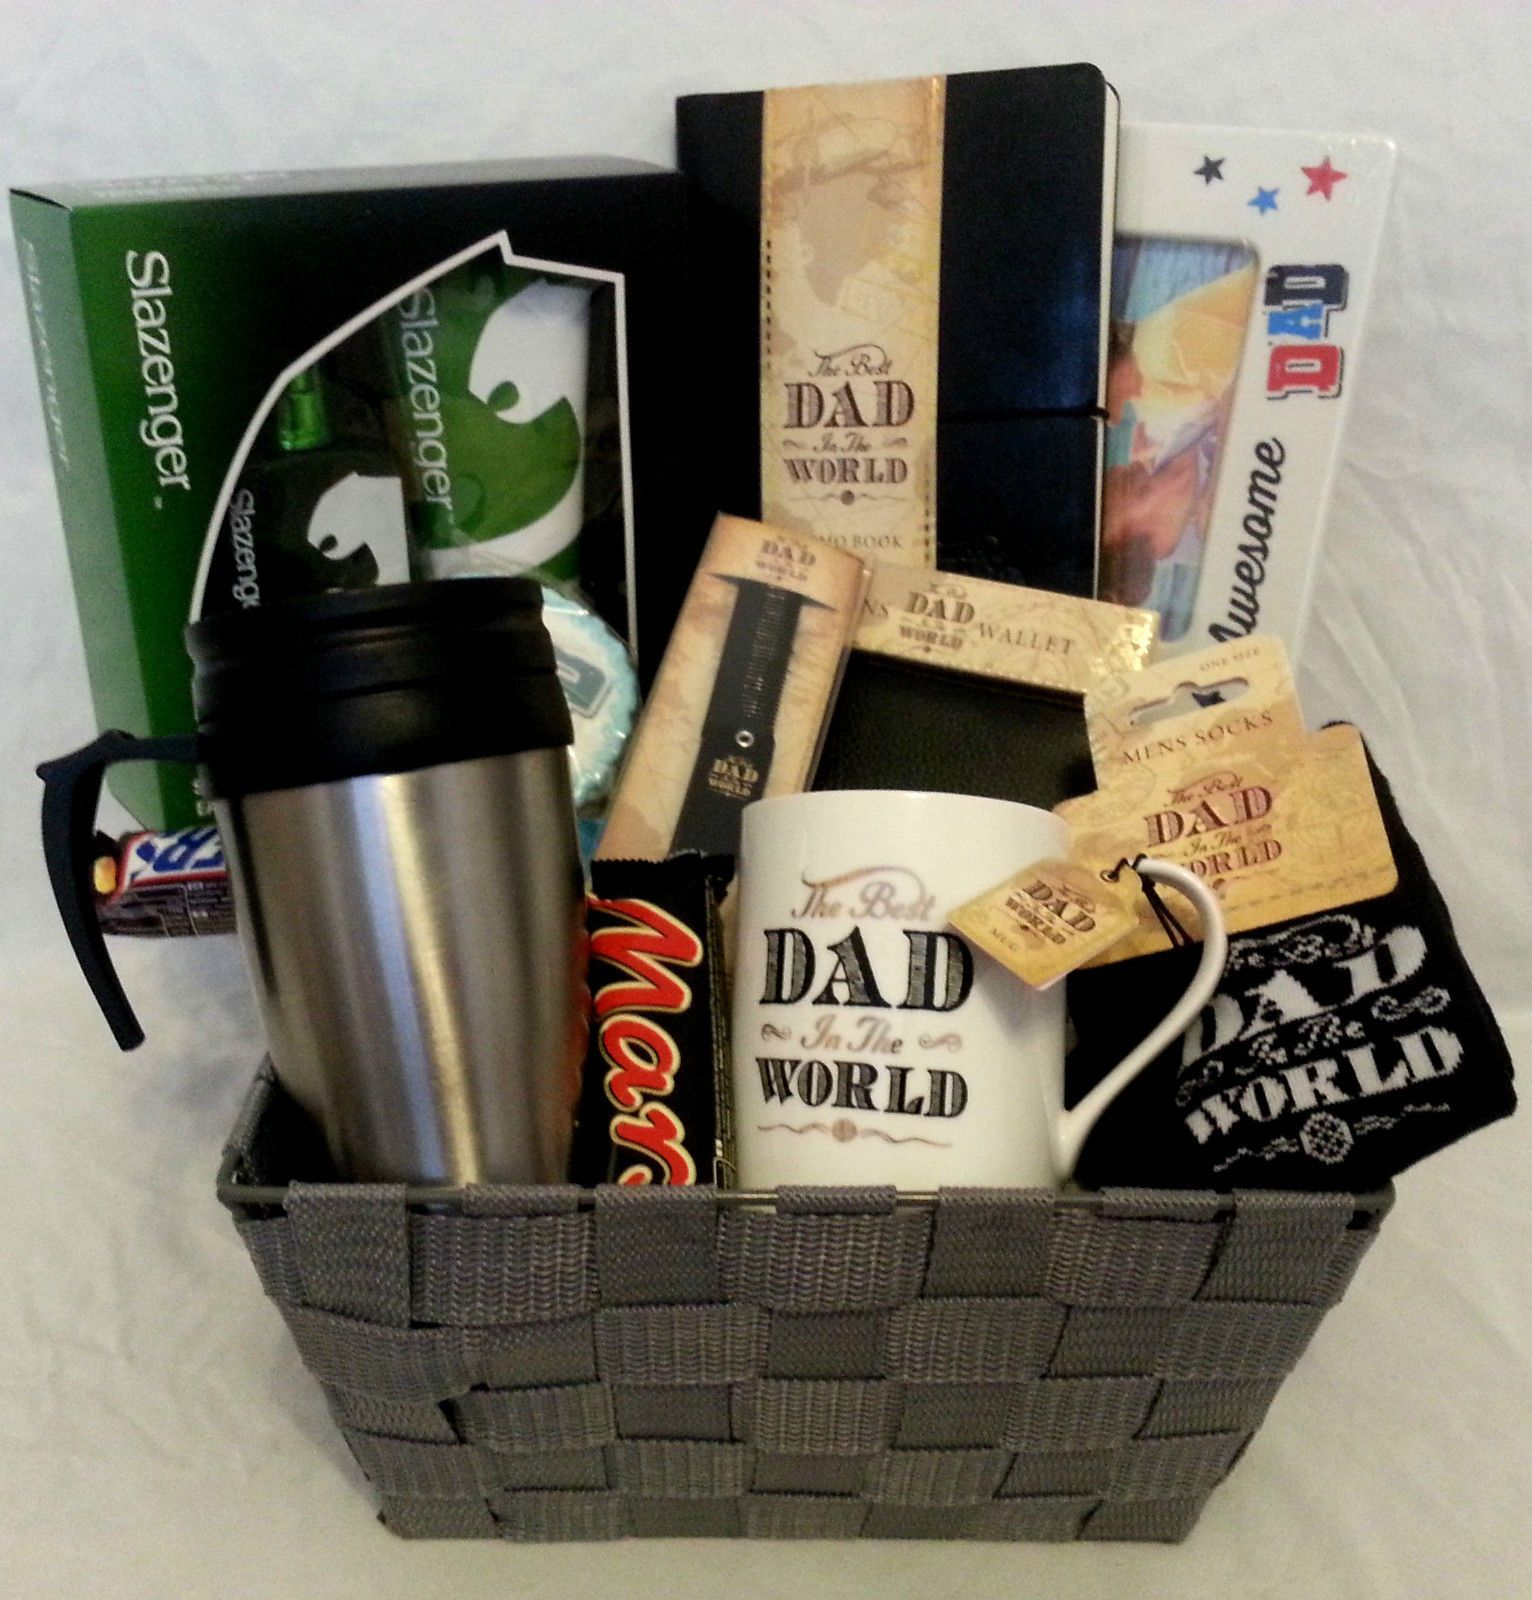 Fathers Day Hamper Basket Birthday Gift Box Set Thanks Present For Him Dad Daddy